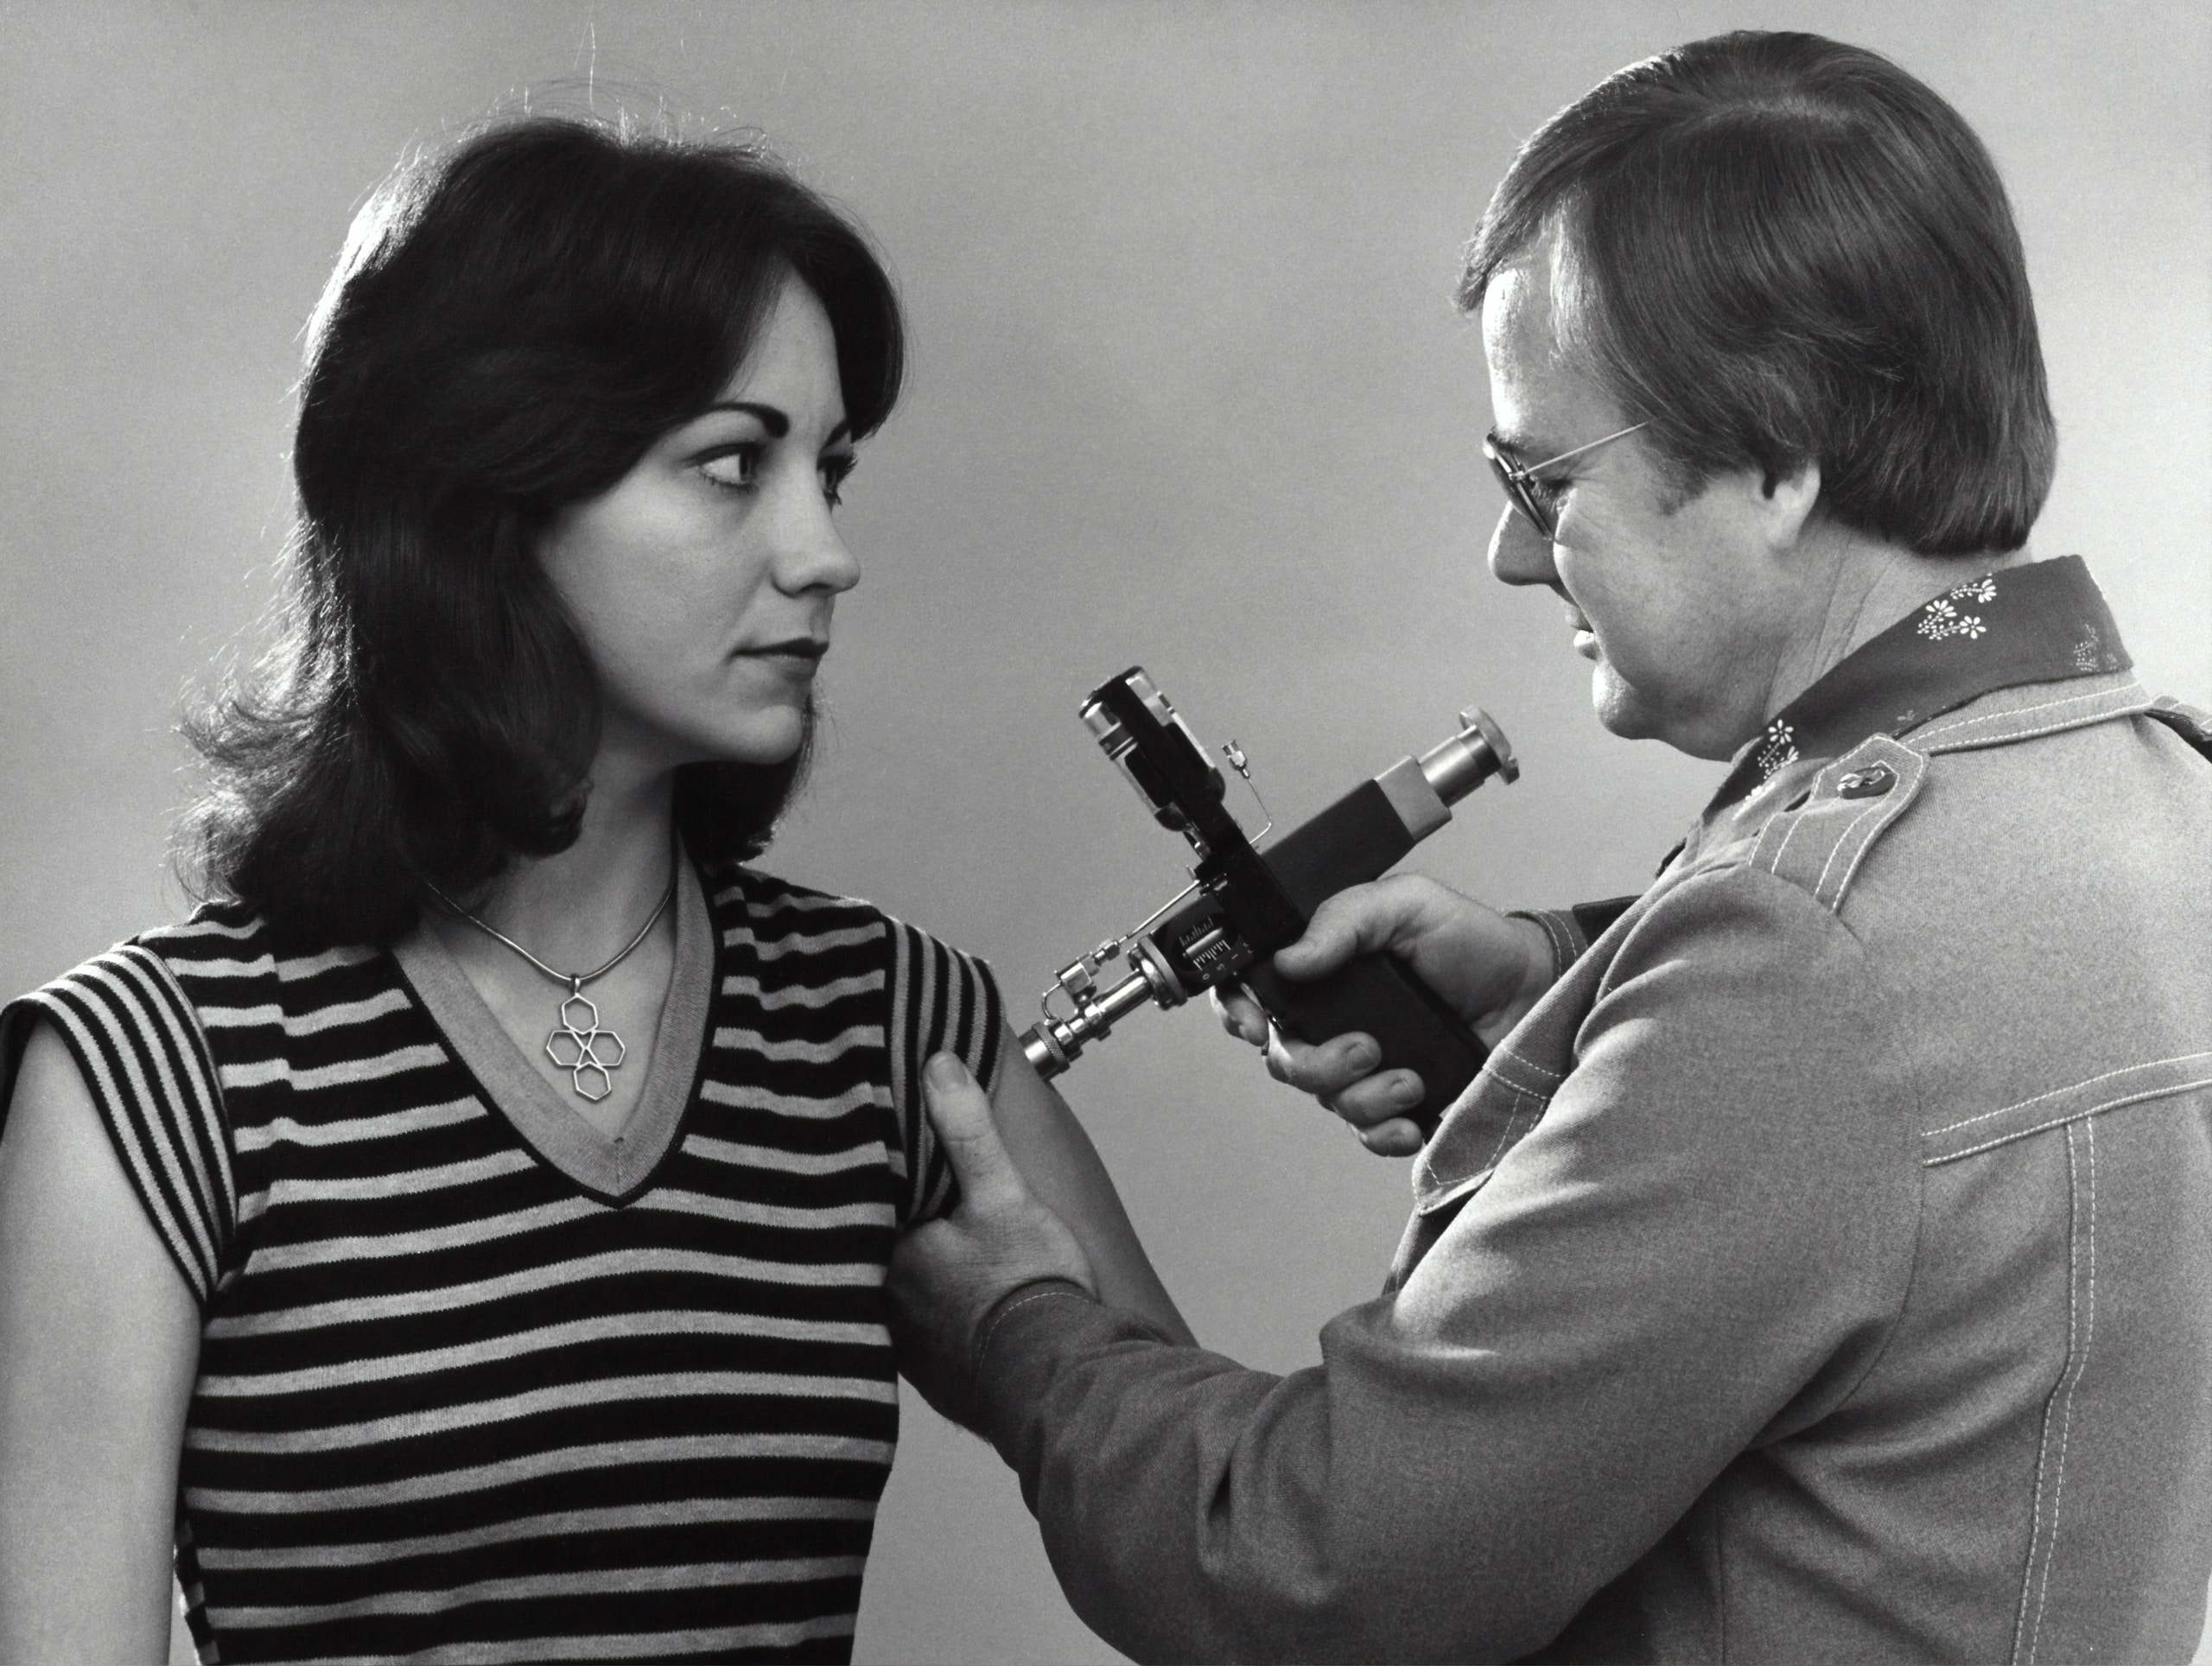 """Created in 1976, this historic photograph showed an adult female receiving a vaccination that was administered by a public health clinician, by way of a jet injector, also known as a """"Ped-O-Jet®"""", during the nationwide Swine Flu vaccination campaign, which began October 1, 1976."""